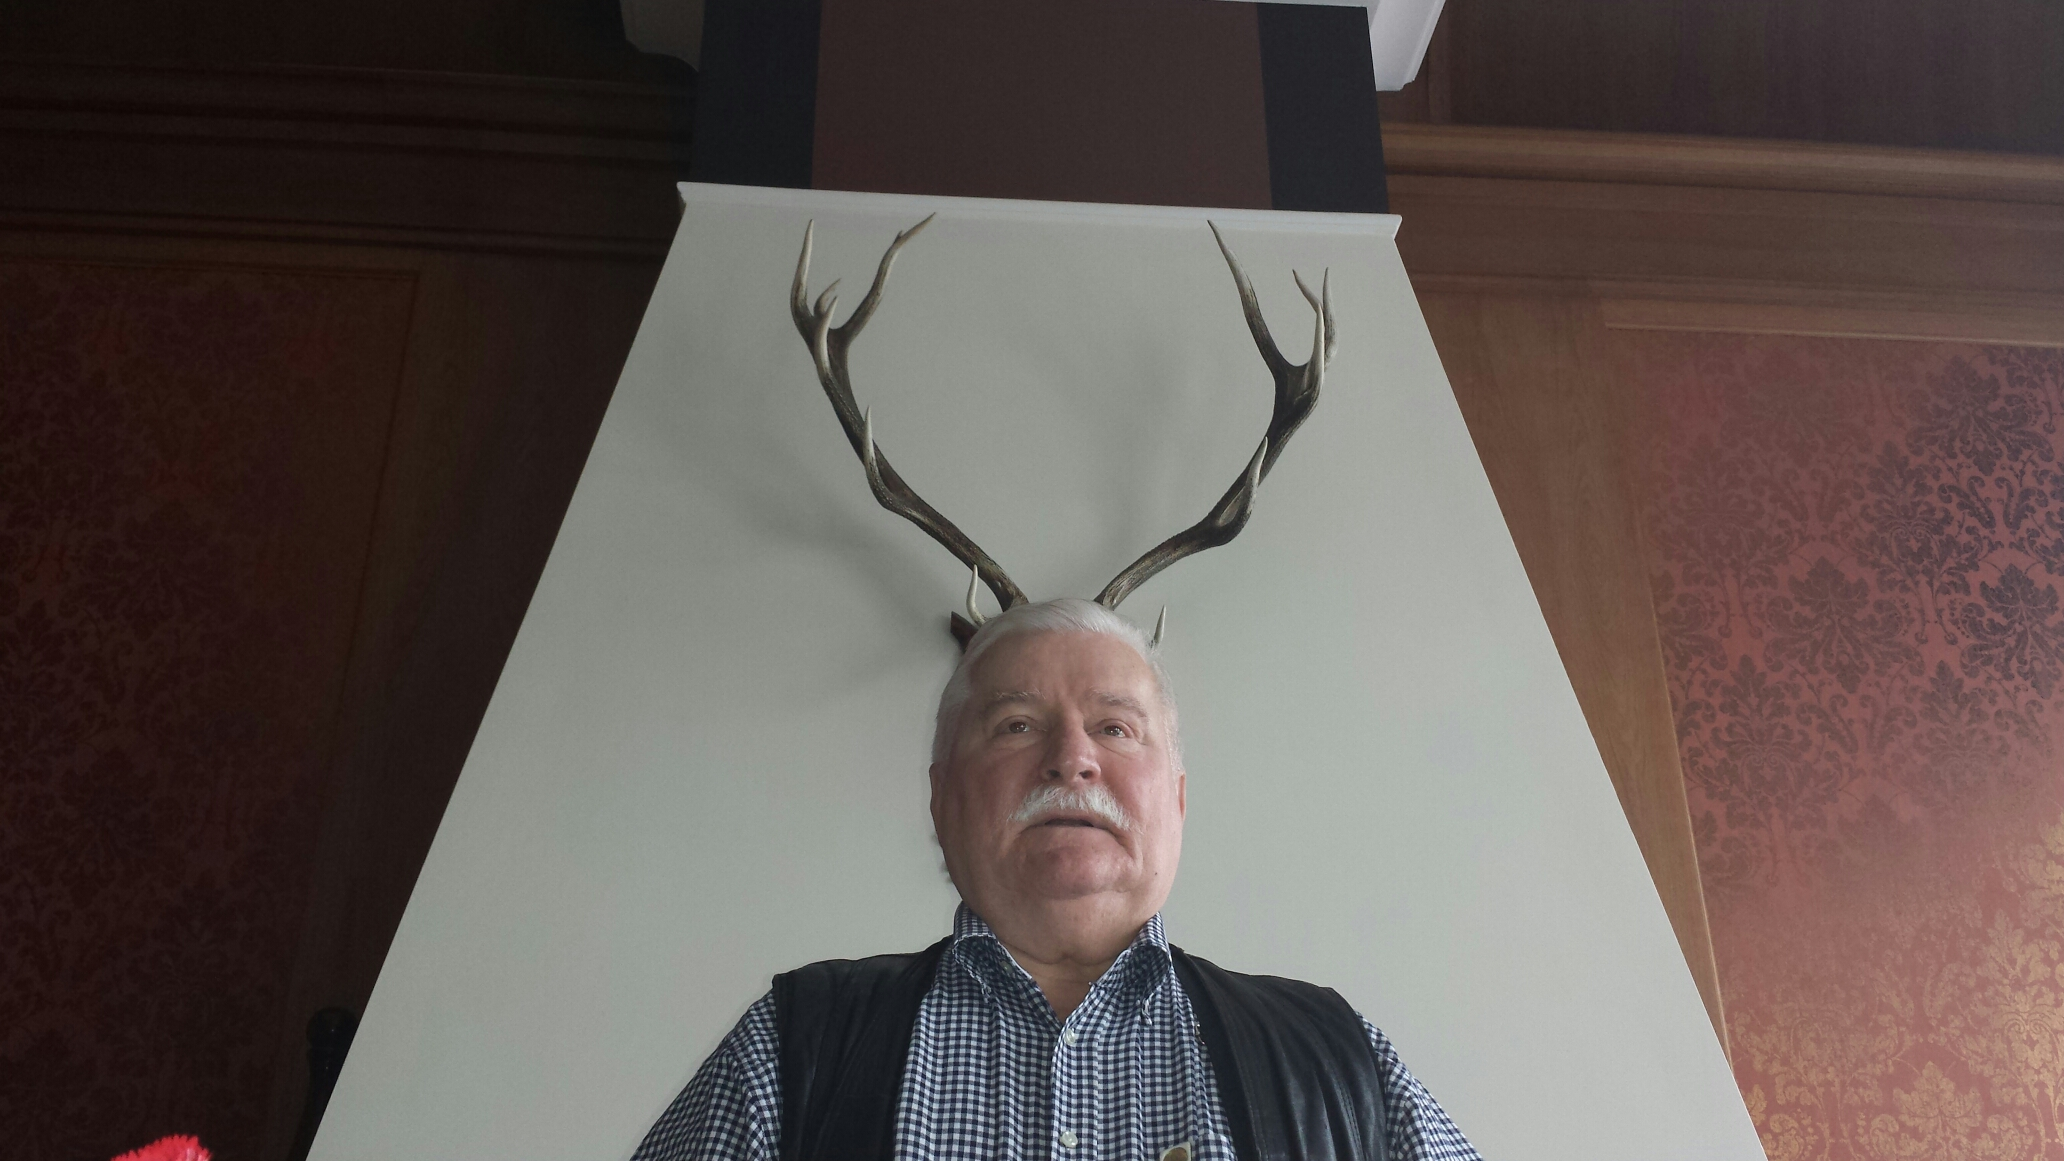 President Lech Wałęsa posing with deer or moose horns behind his head.